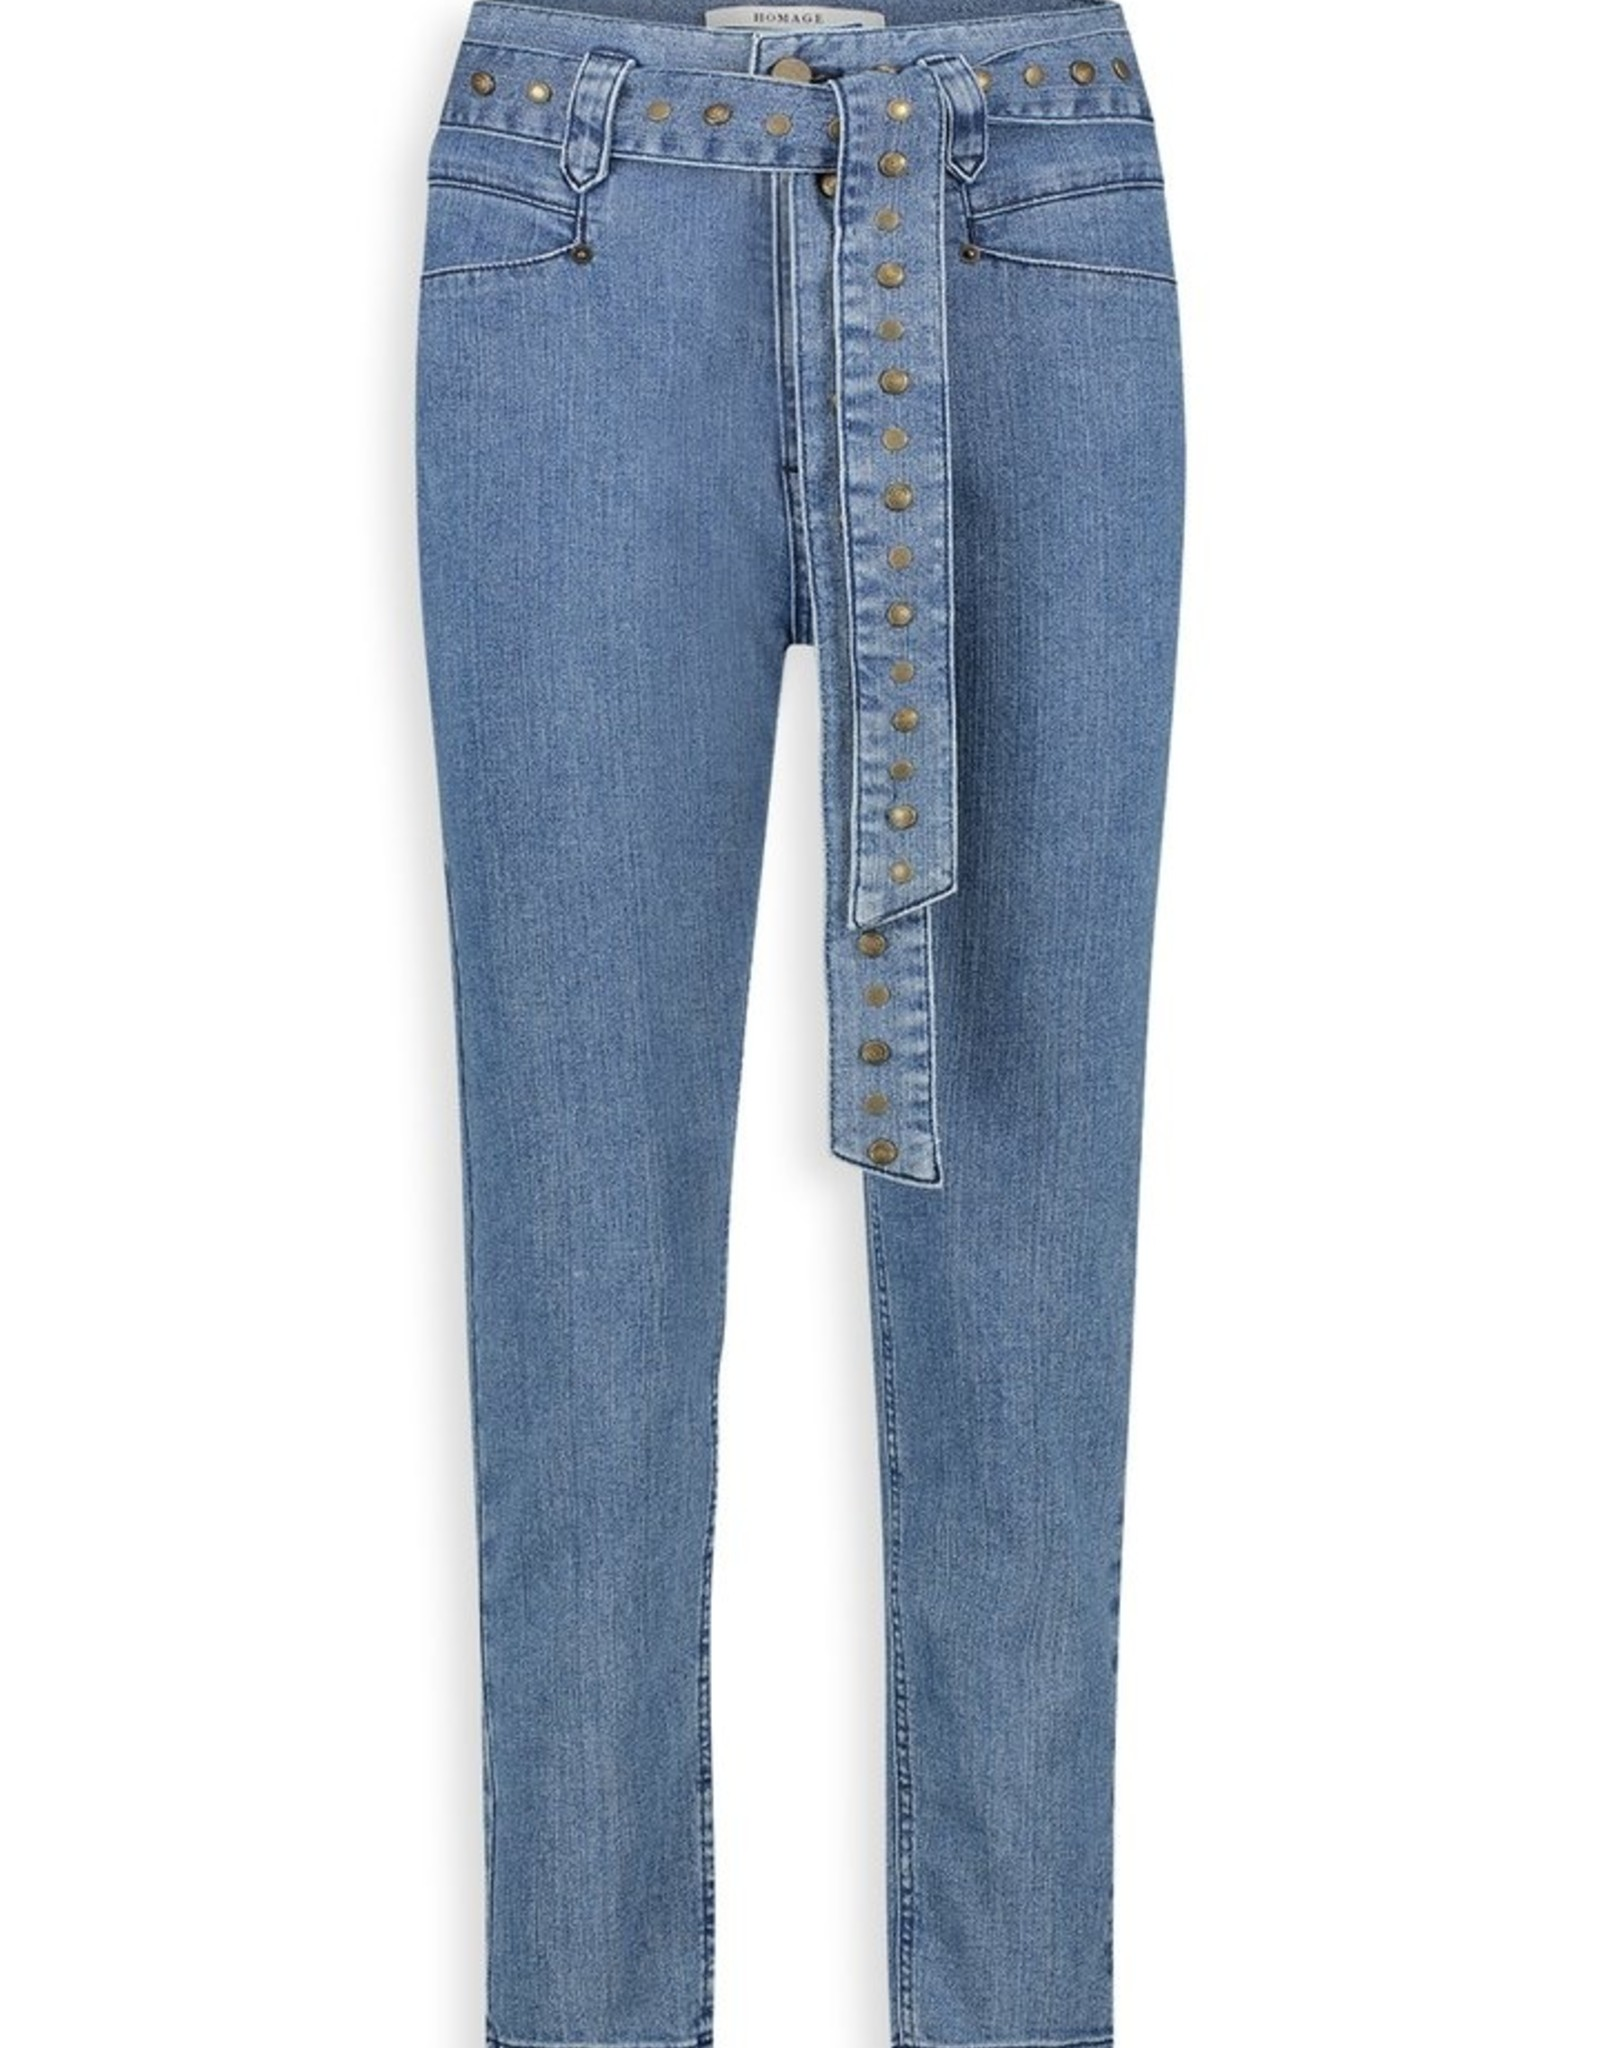 Homage Retro Inspired Jeans With Studs Mid Blue Sparkle